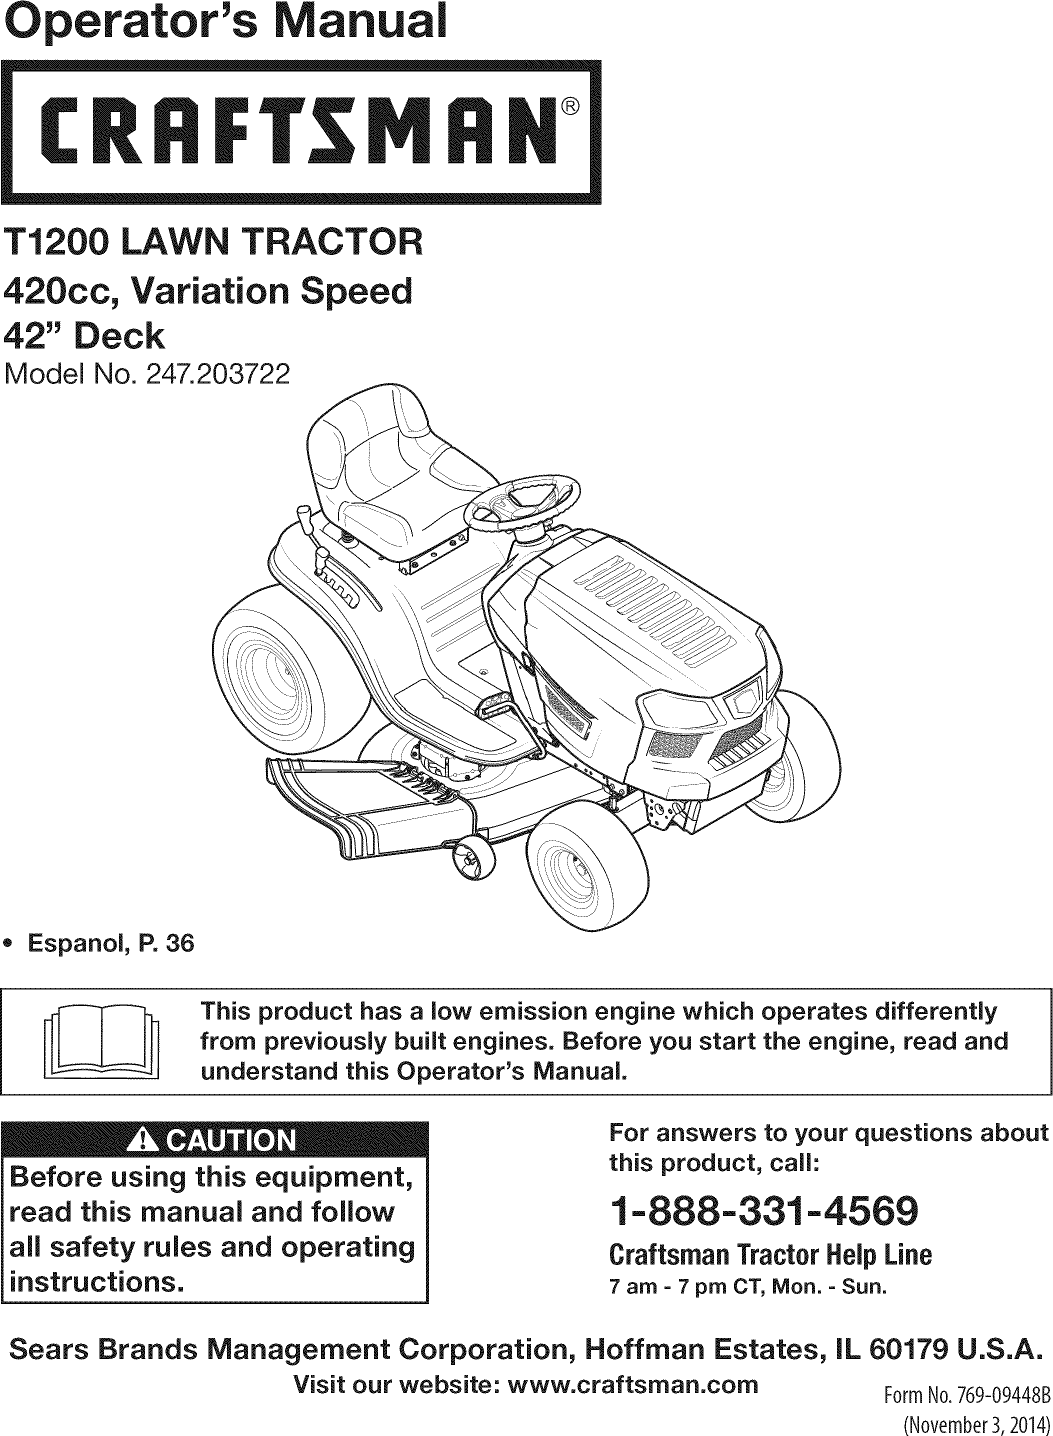 Parts Manual For Monsun Maytag Refrigerator Schematic Craftsman 247203722 1501245l User Tractor Manuals And Guides Rh Usermanual Wiki Murray 22 Lawn Mower